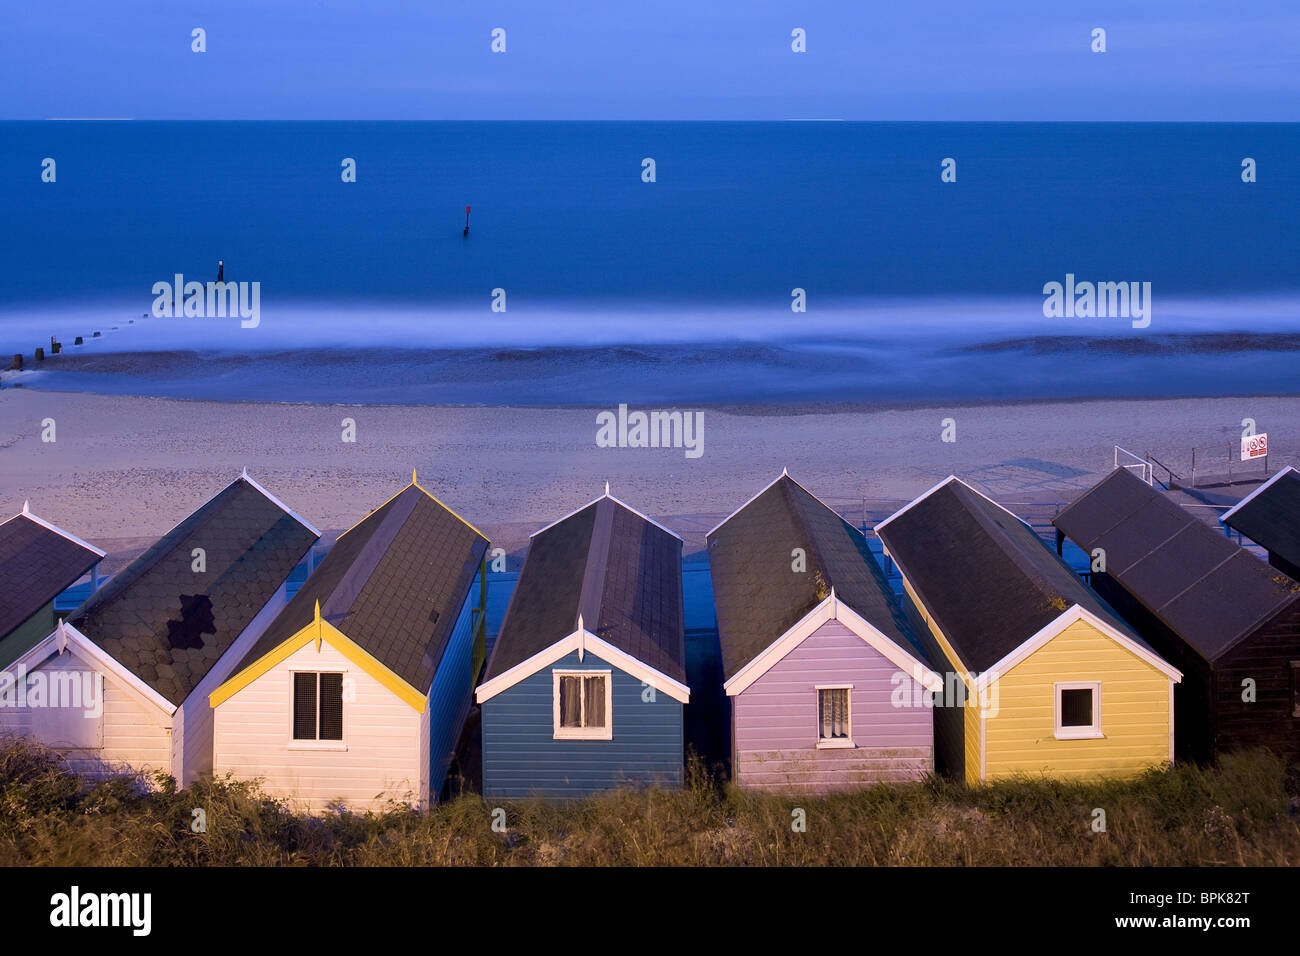 Beach huts in Southwold, East Anglia, Suffolk, England, Great Britain, Europe - Stock Image